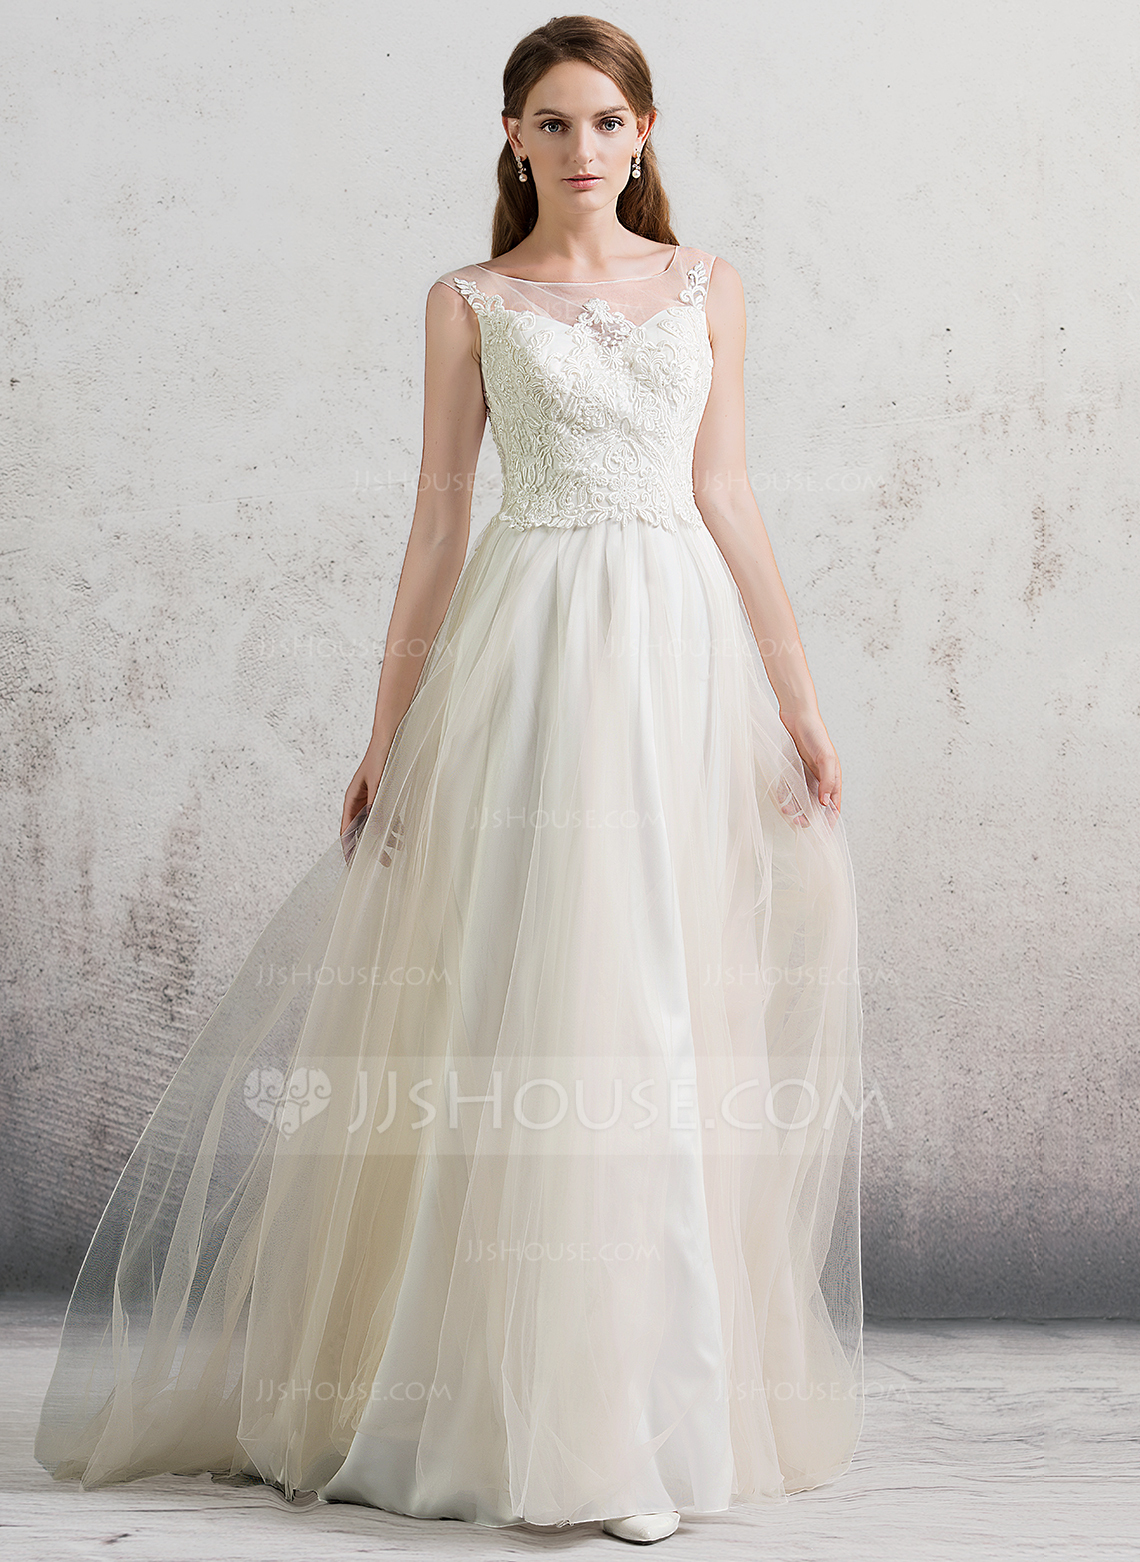 A LinePrincess Scoop Neck Sweep Train Tulle Wedding Dress